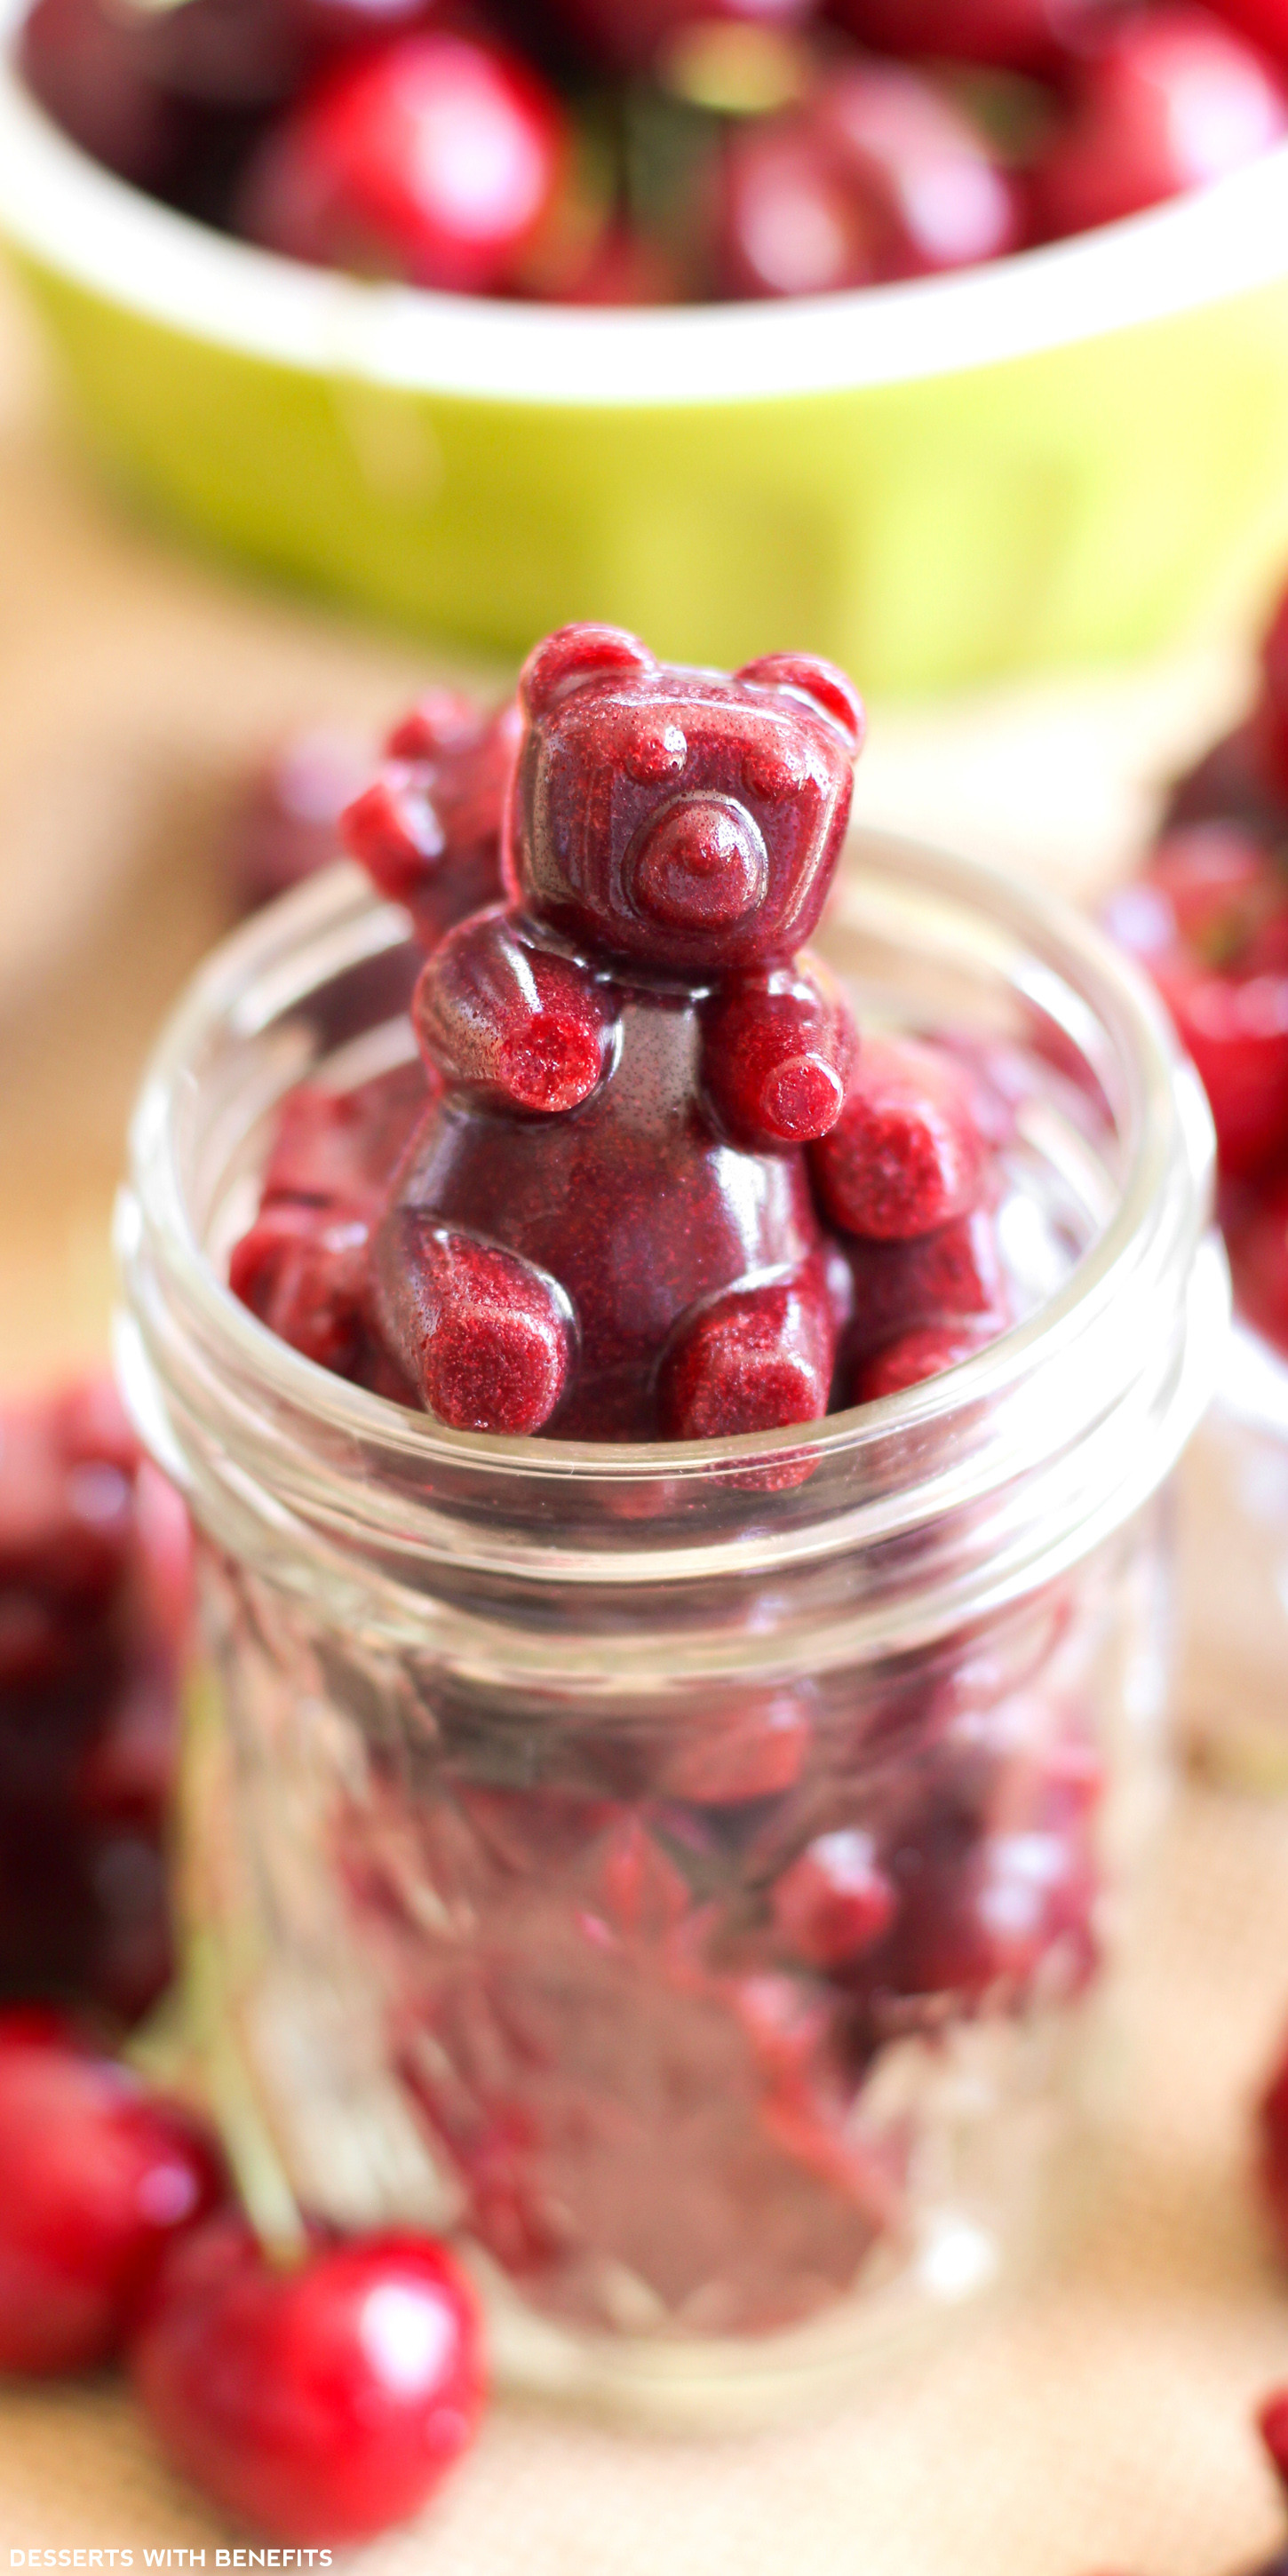 Healthy Fruit Desserts  Healthy Cherry Fruit Snacks Recipe